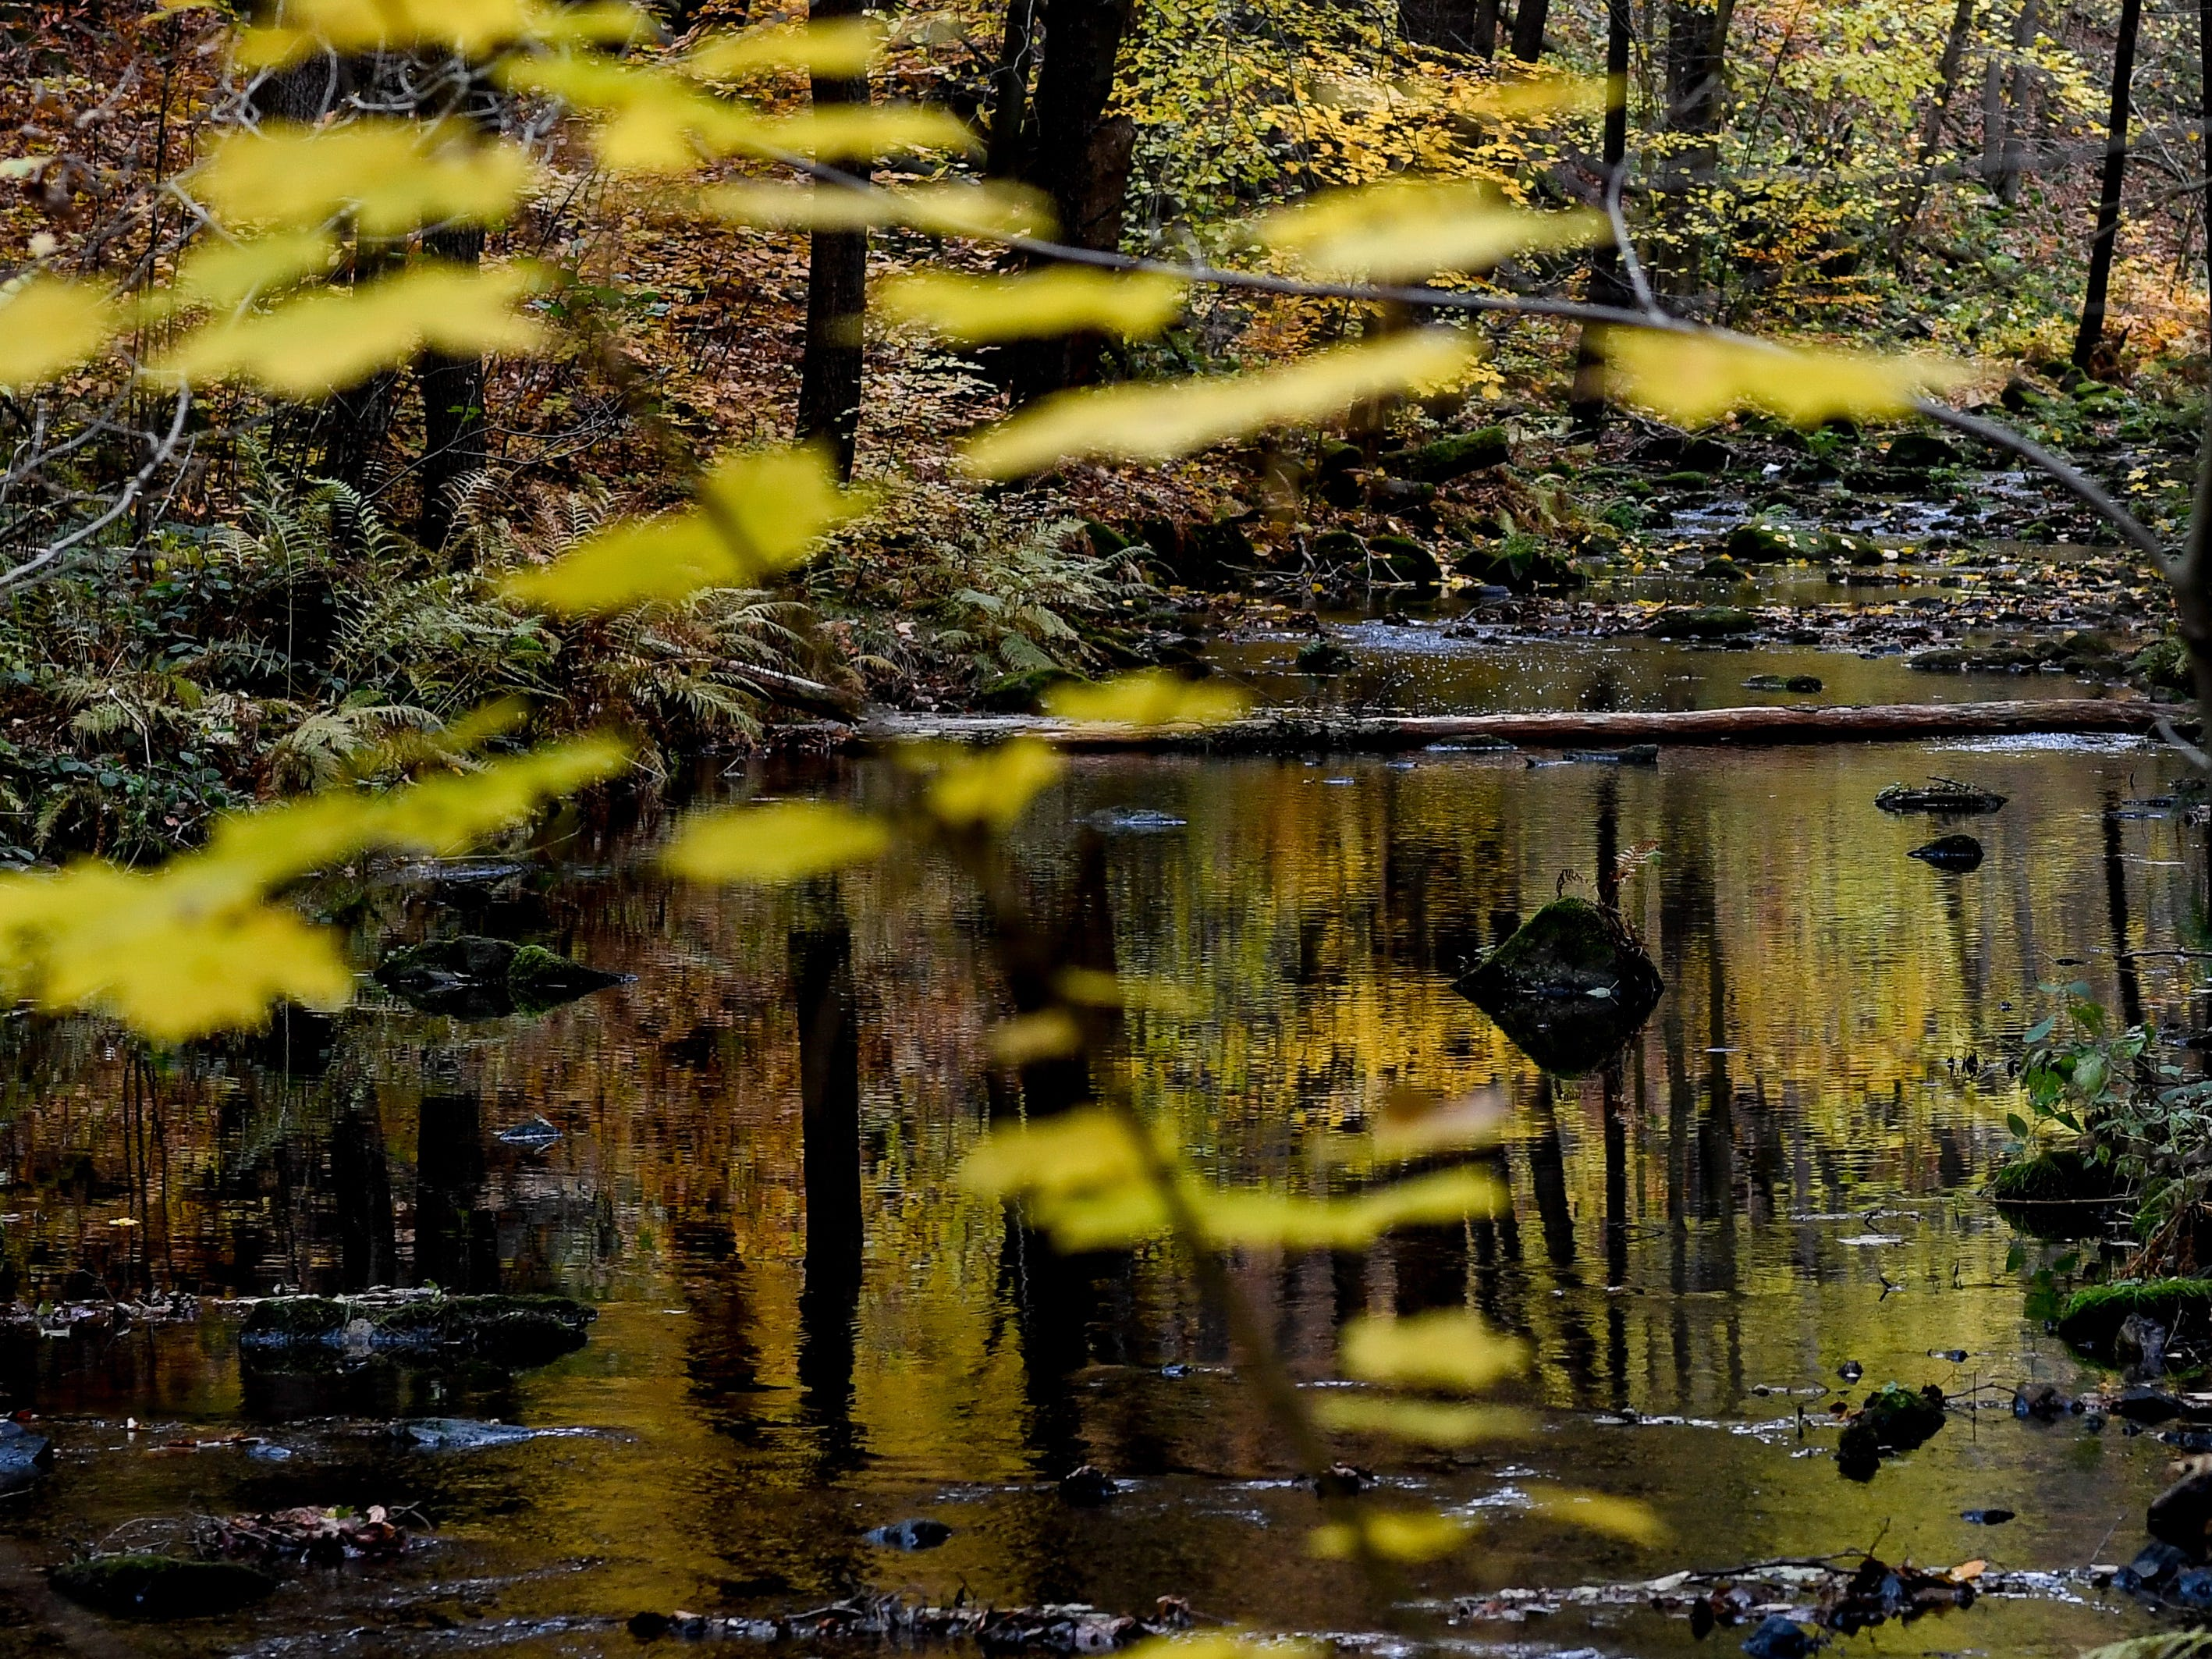 An autumnal colored forest in the Eastern Ore Mountains near Dippoldiswalde, Germany, Nov. 4, 2018.